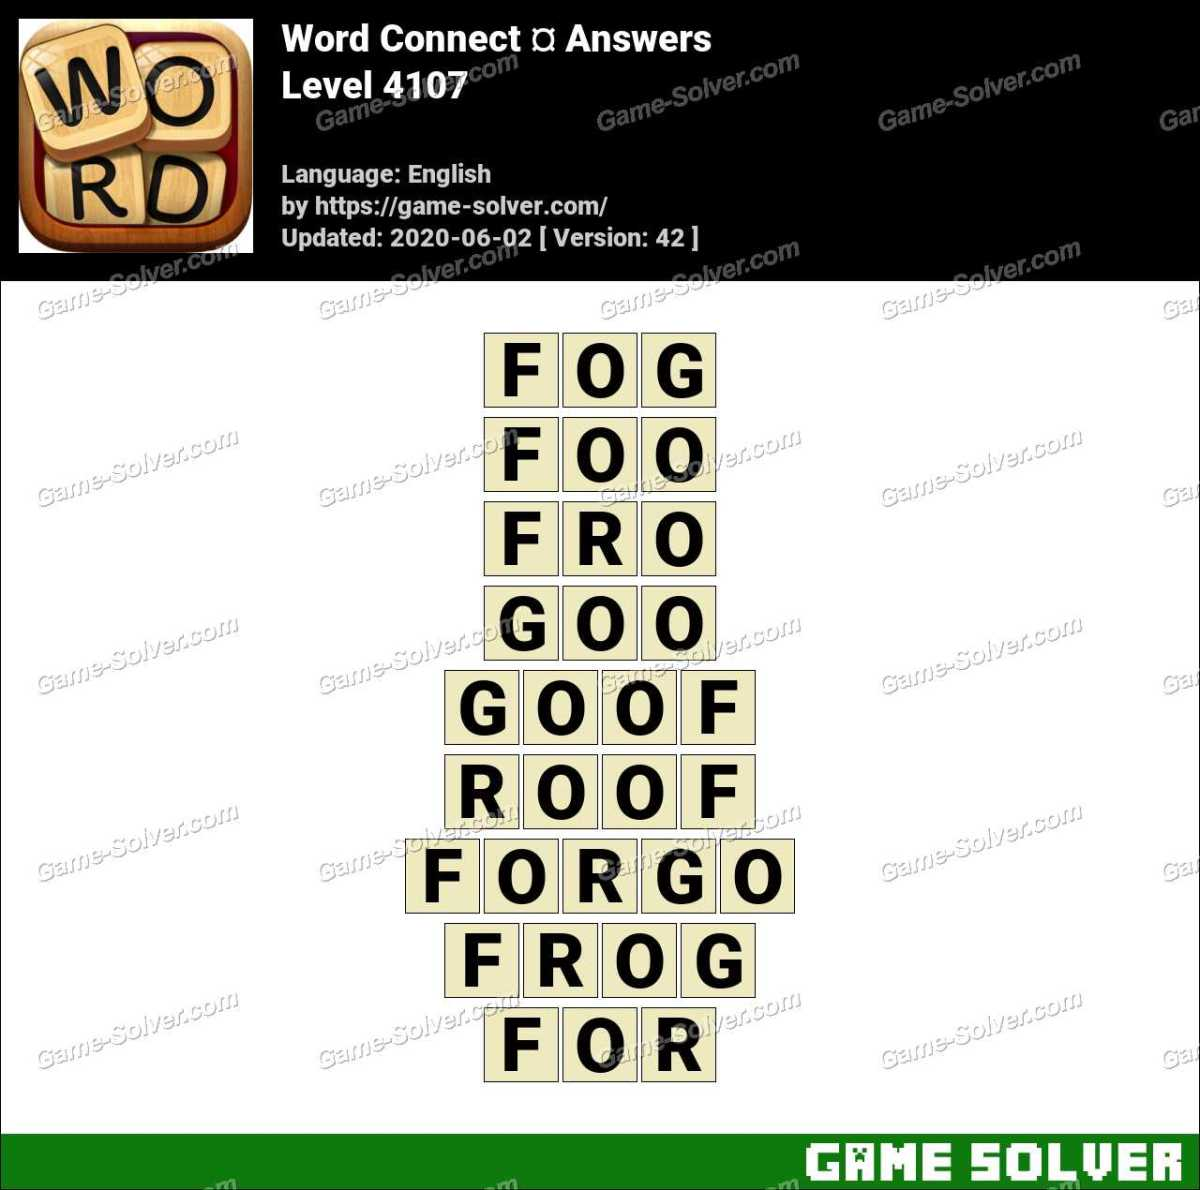 Word Connect Level 4107 Answers